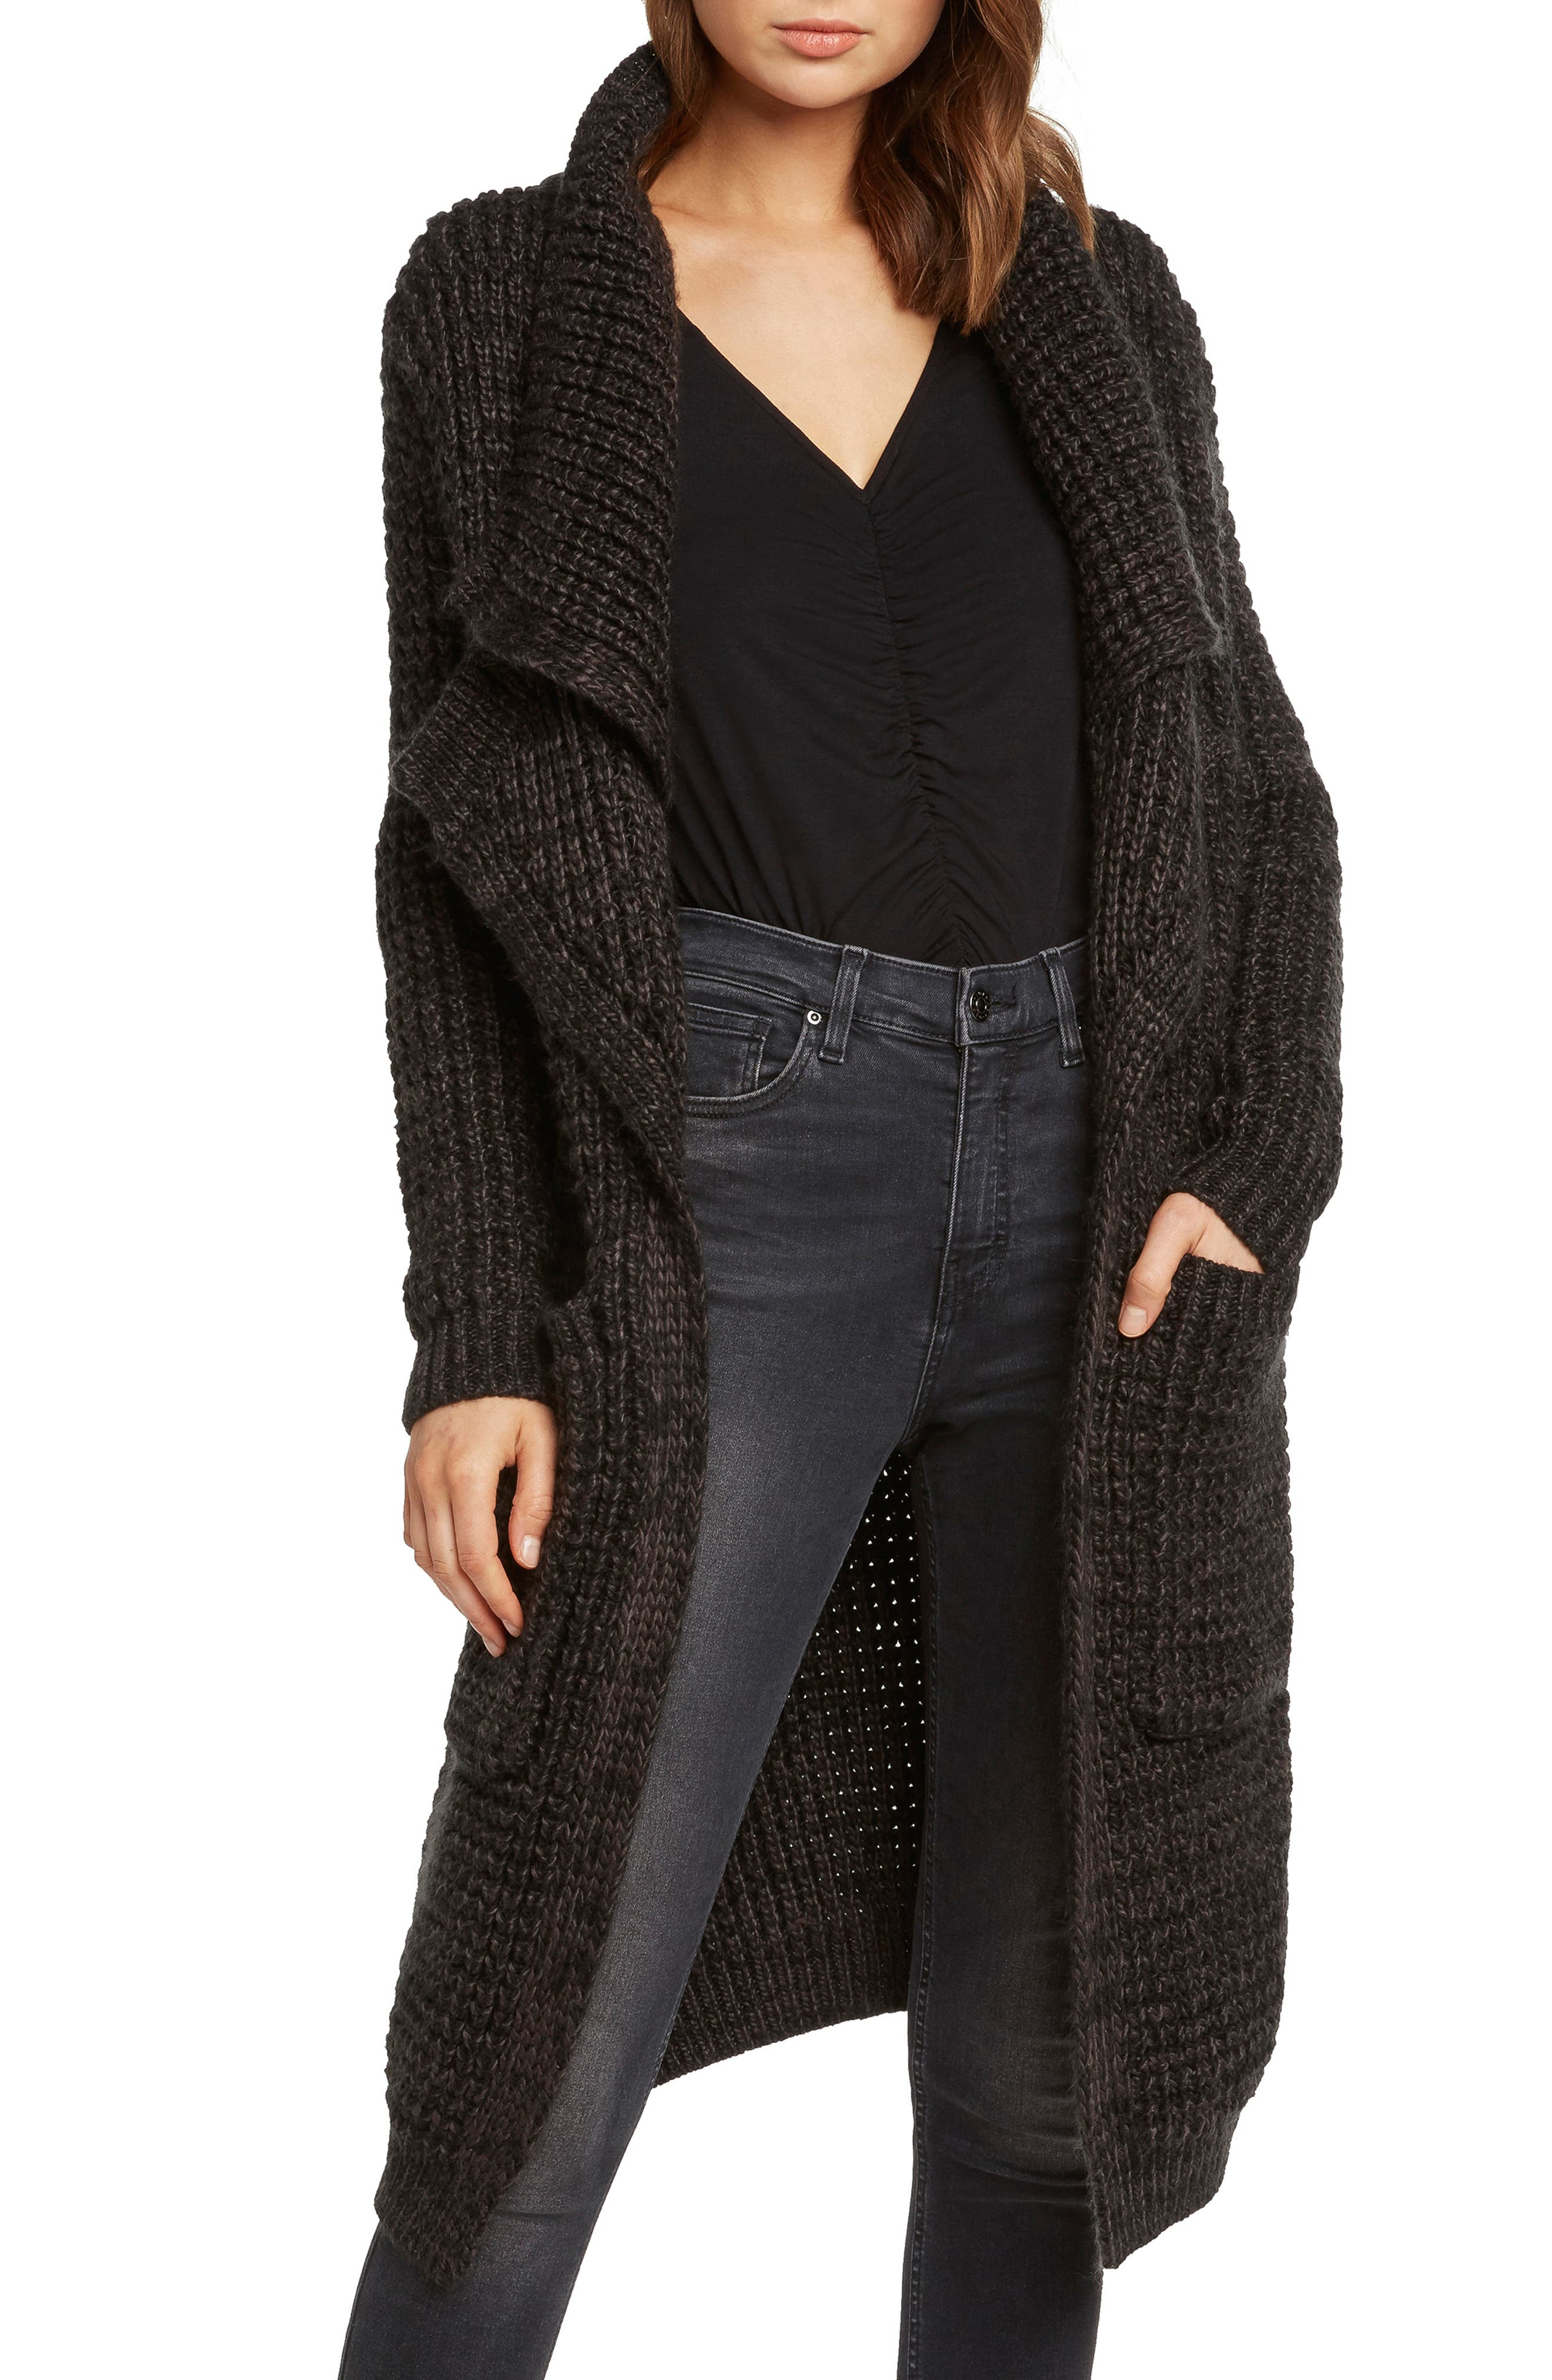 WILLOW & CLAY Oversized Long Cardigan in Charcoal